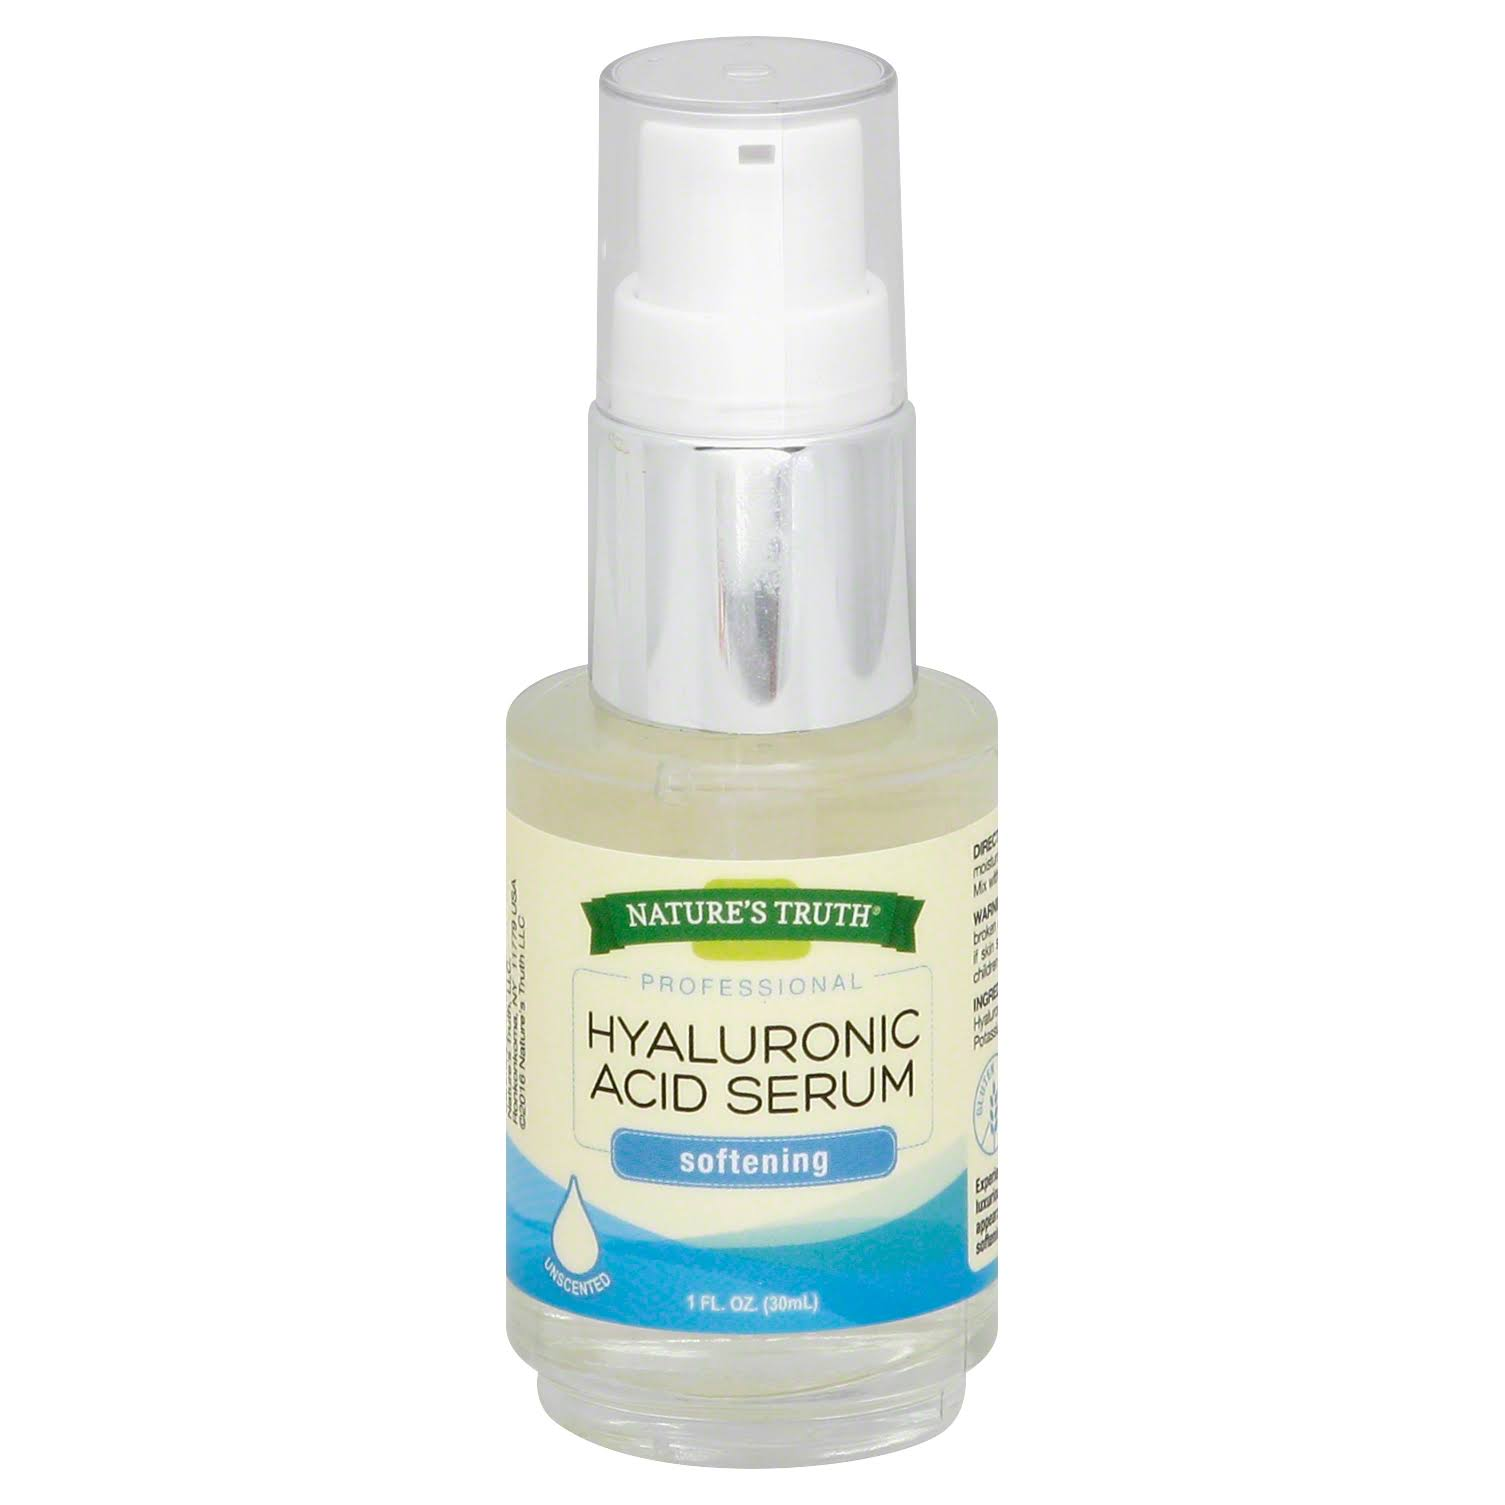 Natures Truth Professional Hyaluronic Acid Serum, Softening, Unscented - 1 fl oz